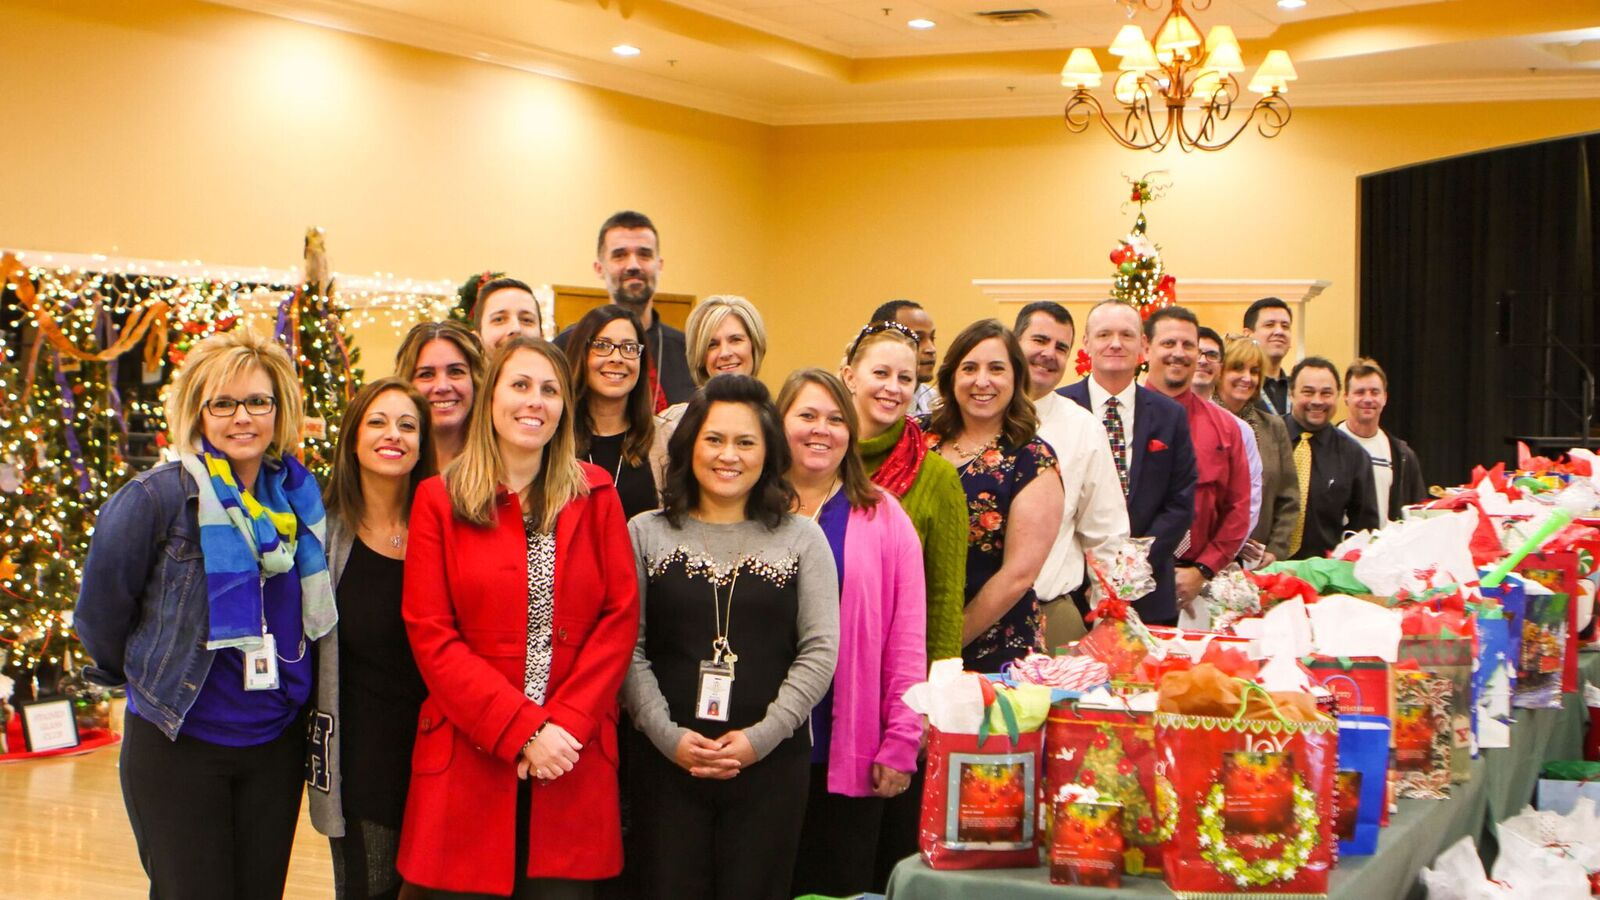 This Holiday Season, 140 Children From Families In The Higley District Received Special Surprises Thanks To The Love And Care Of Trilogy Residents. Photo Courtesy Ryan Collier/ Higley Unified School District